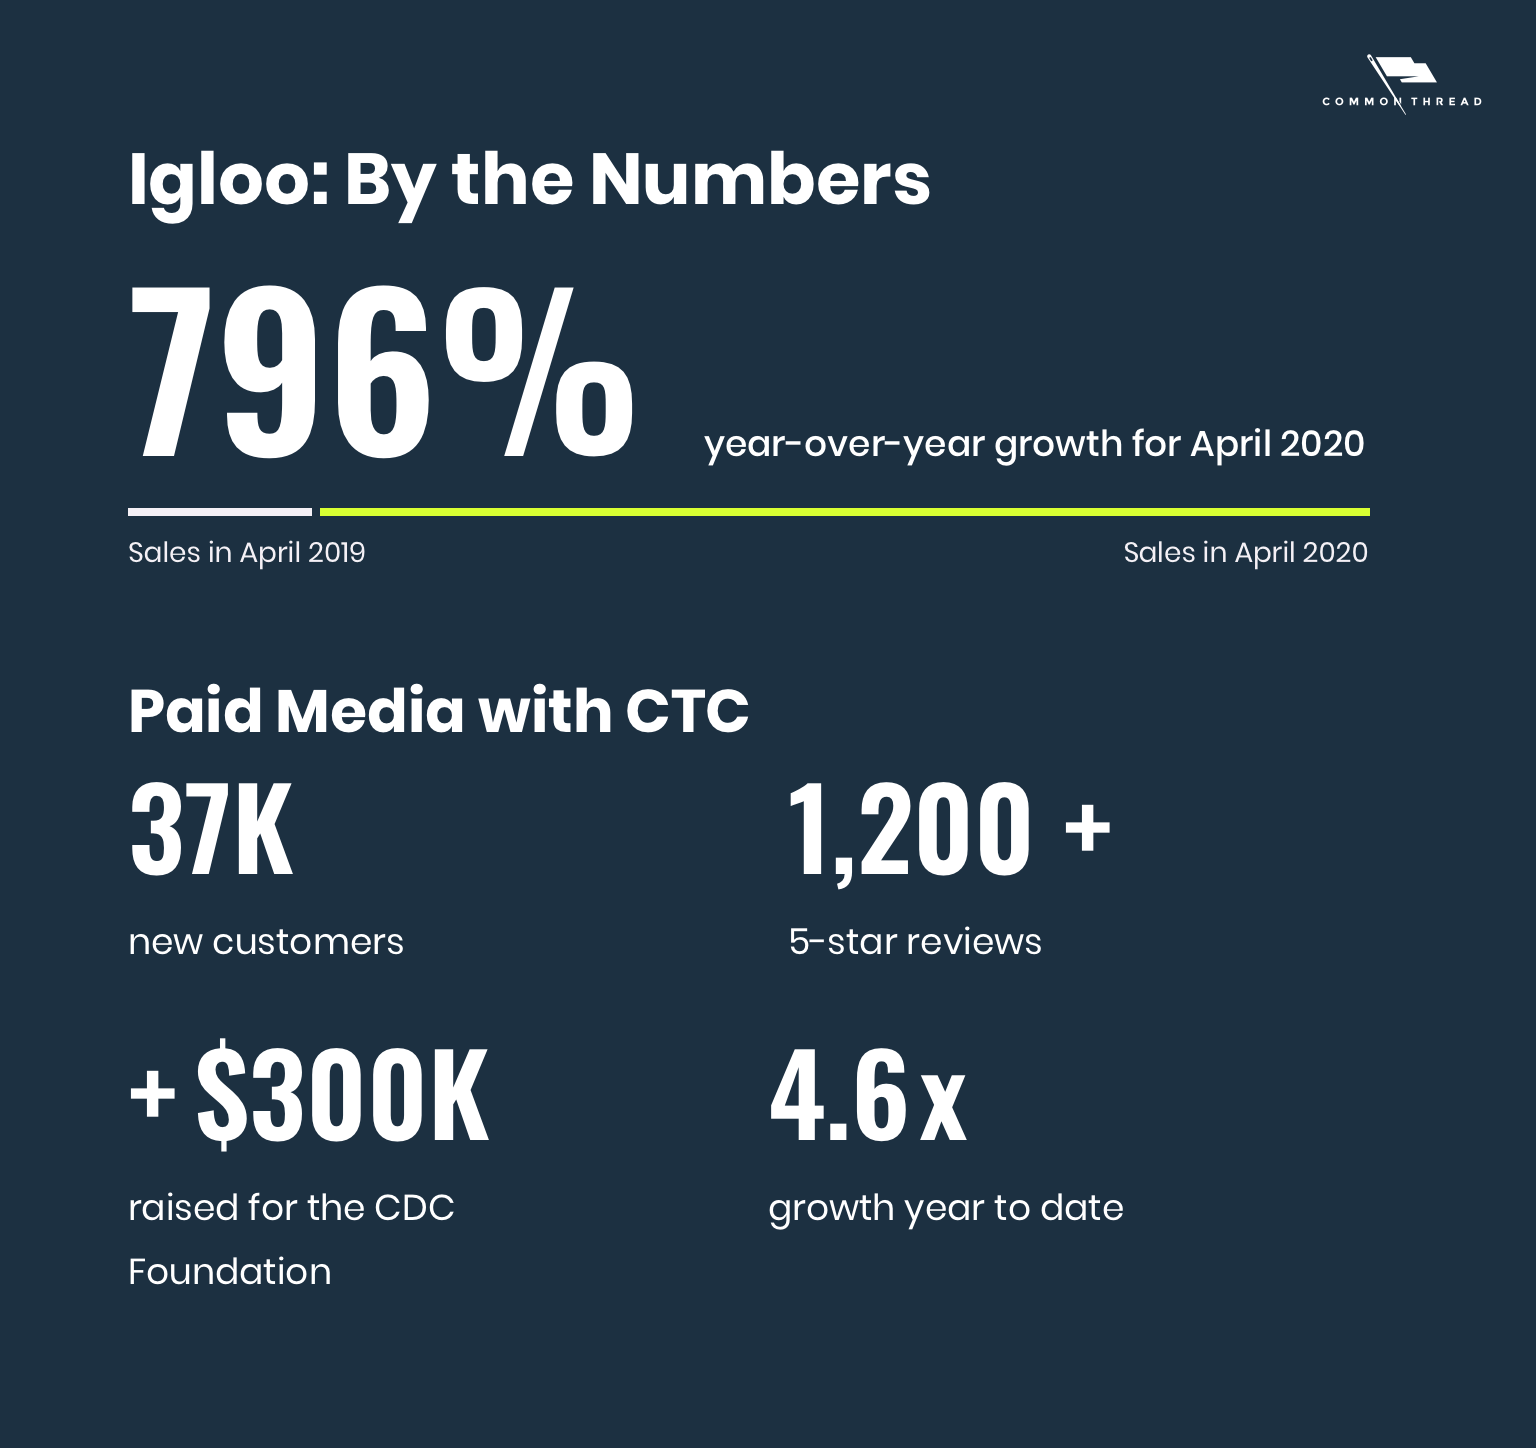 Igloo: By The Numbers